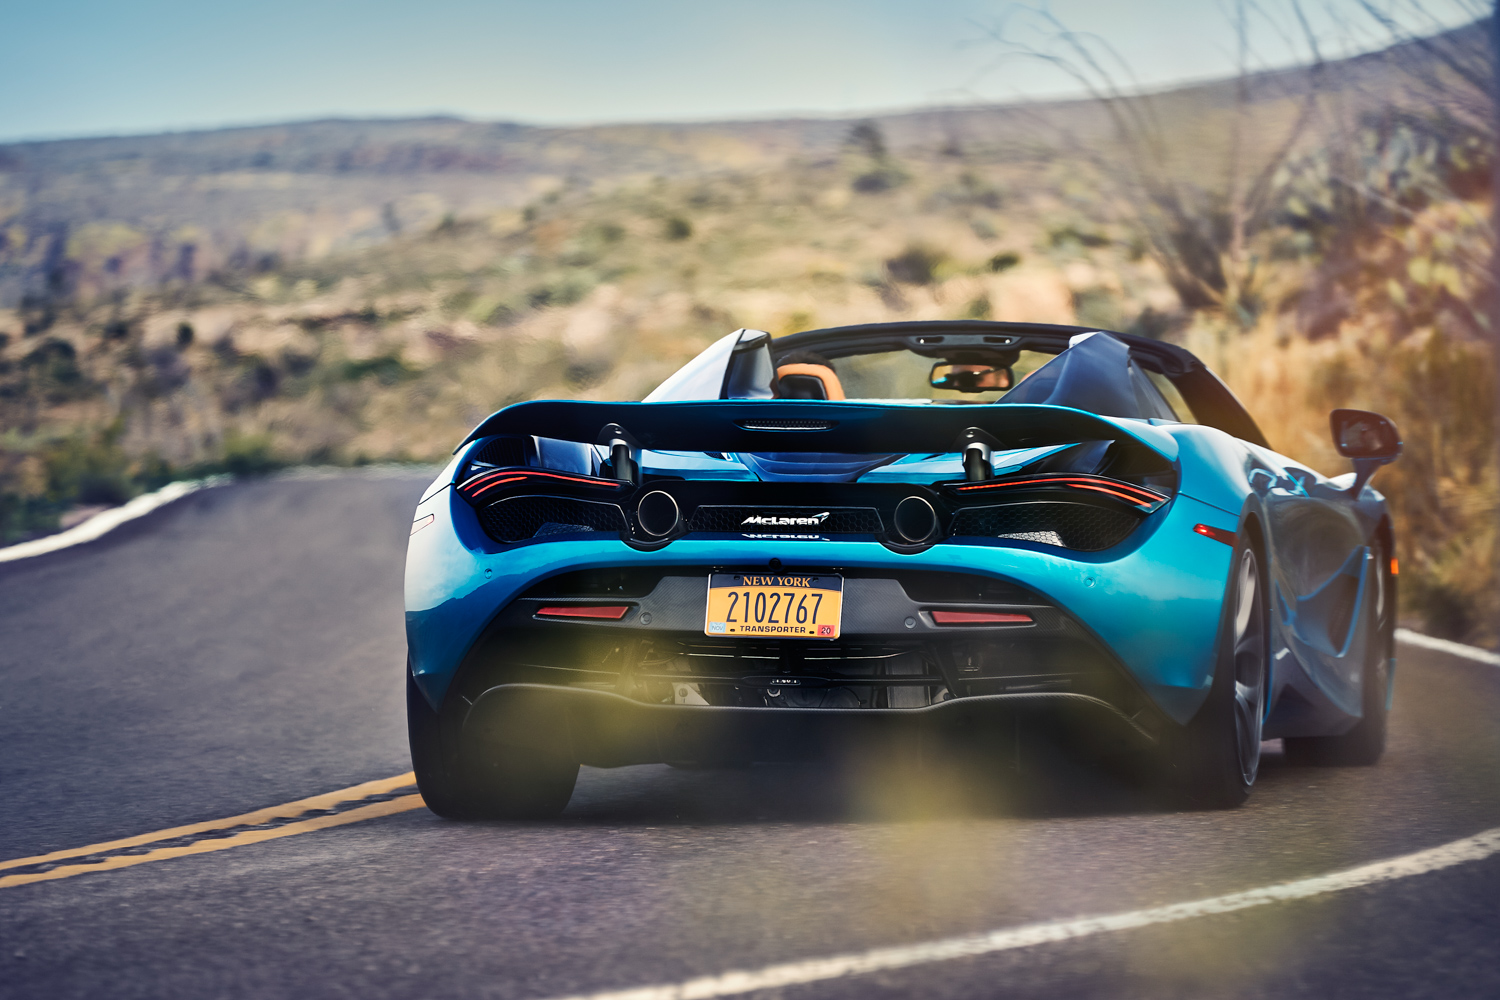 McLaren 720S Spider 3/4 rear curv on road